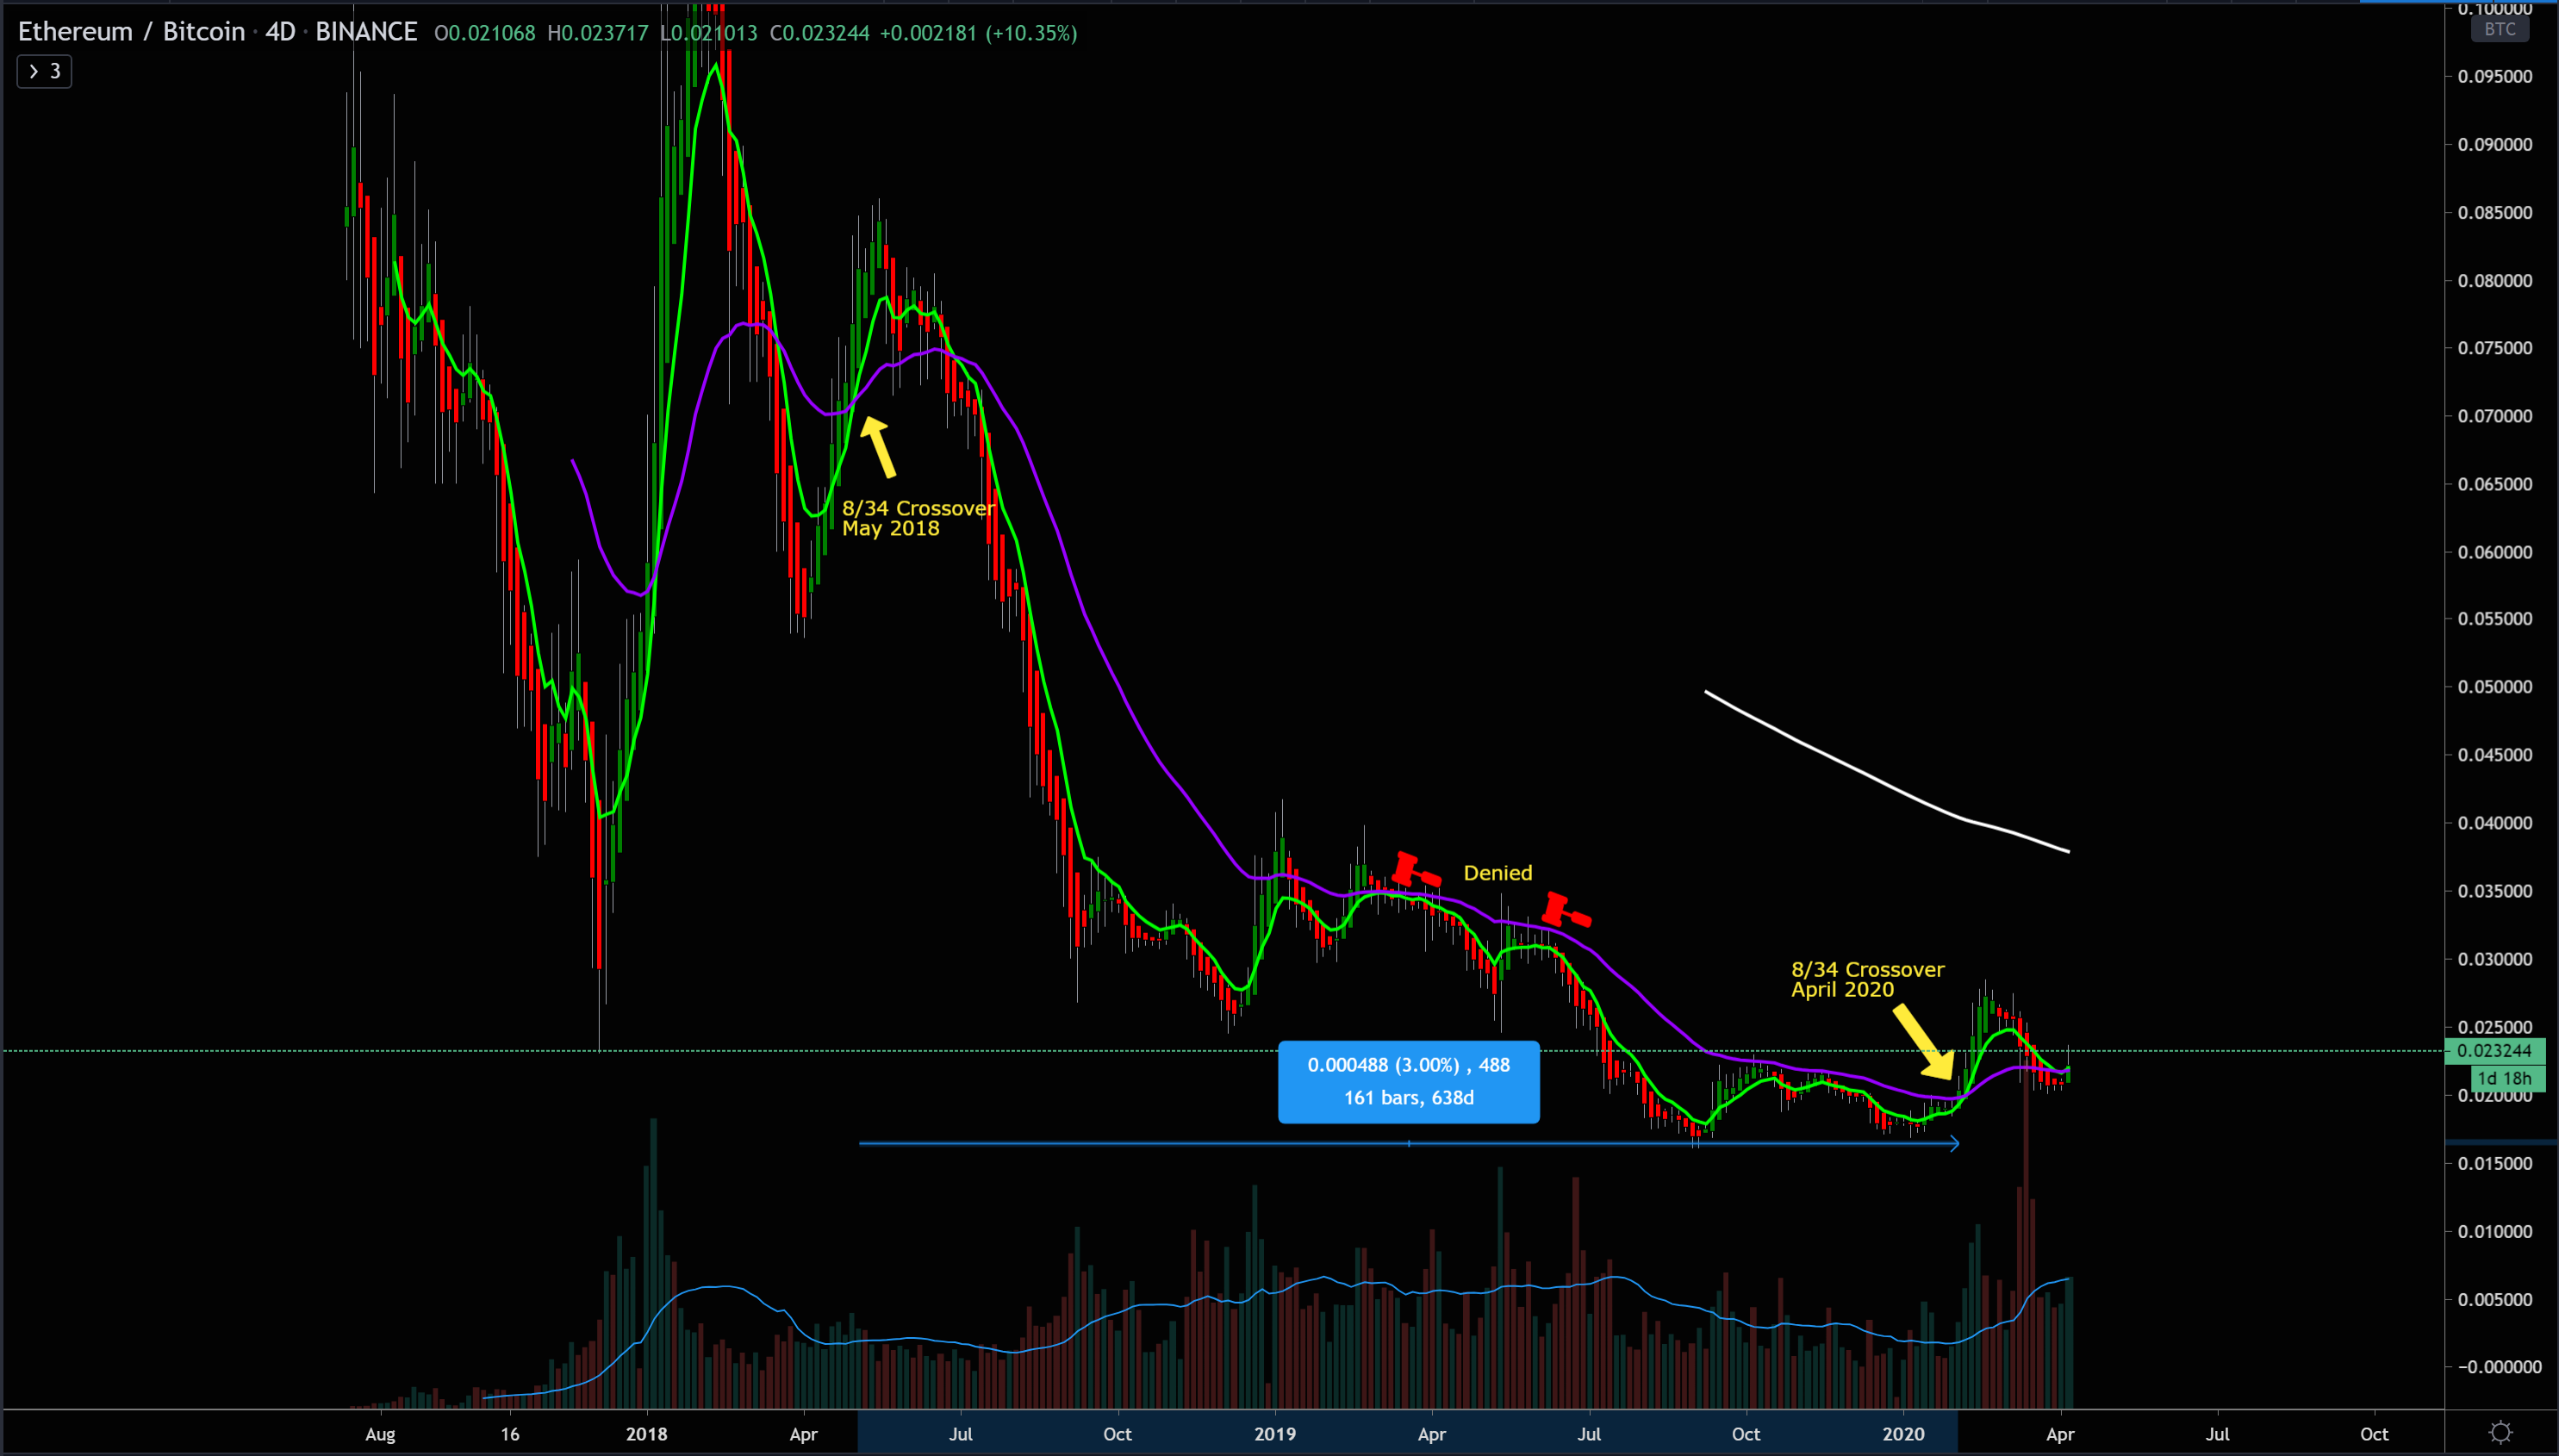 Ethereum hasn't seen a 8/34 EMA crossover on the 4D chart in over 600 days.